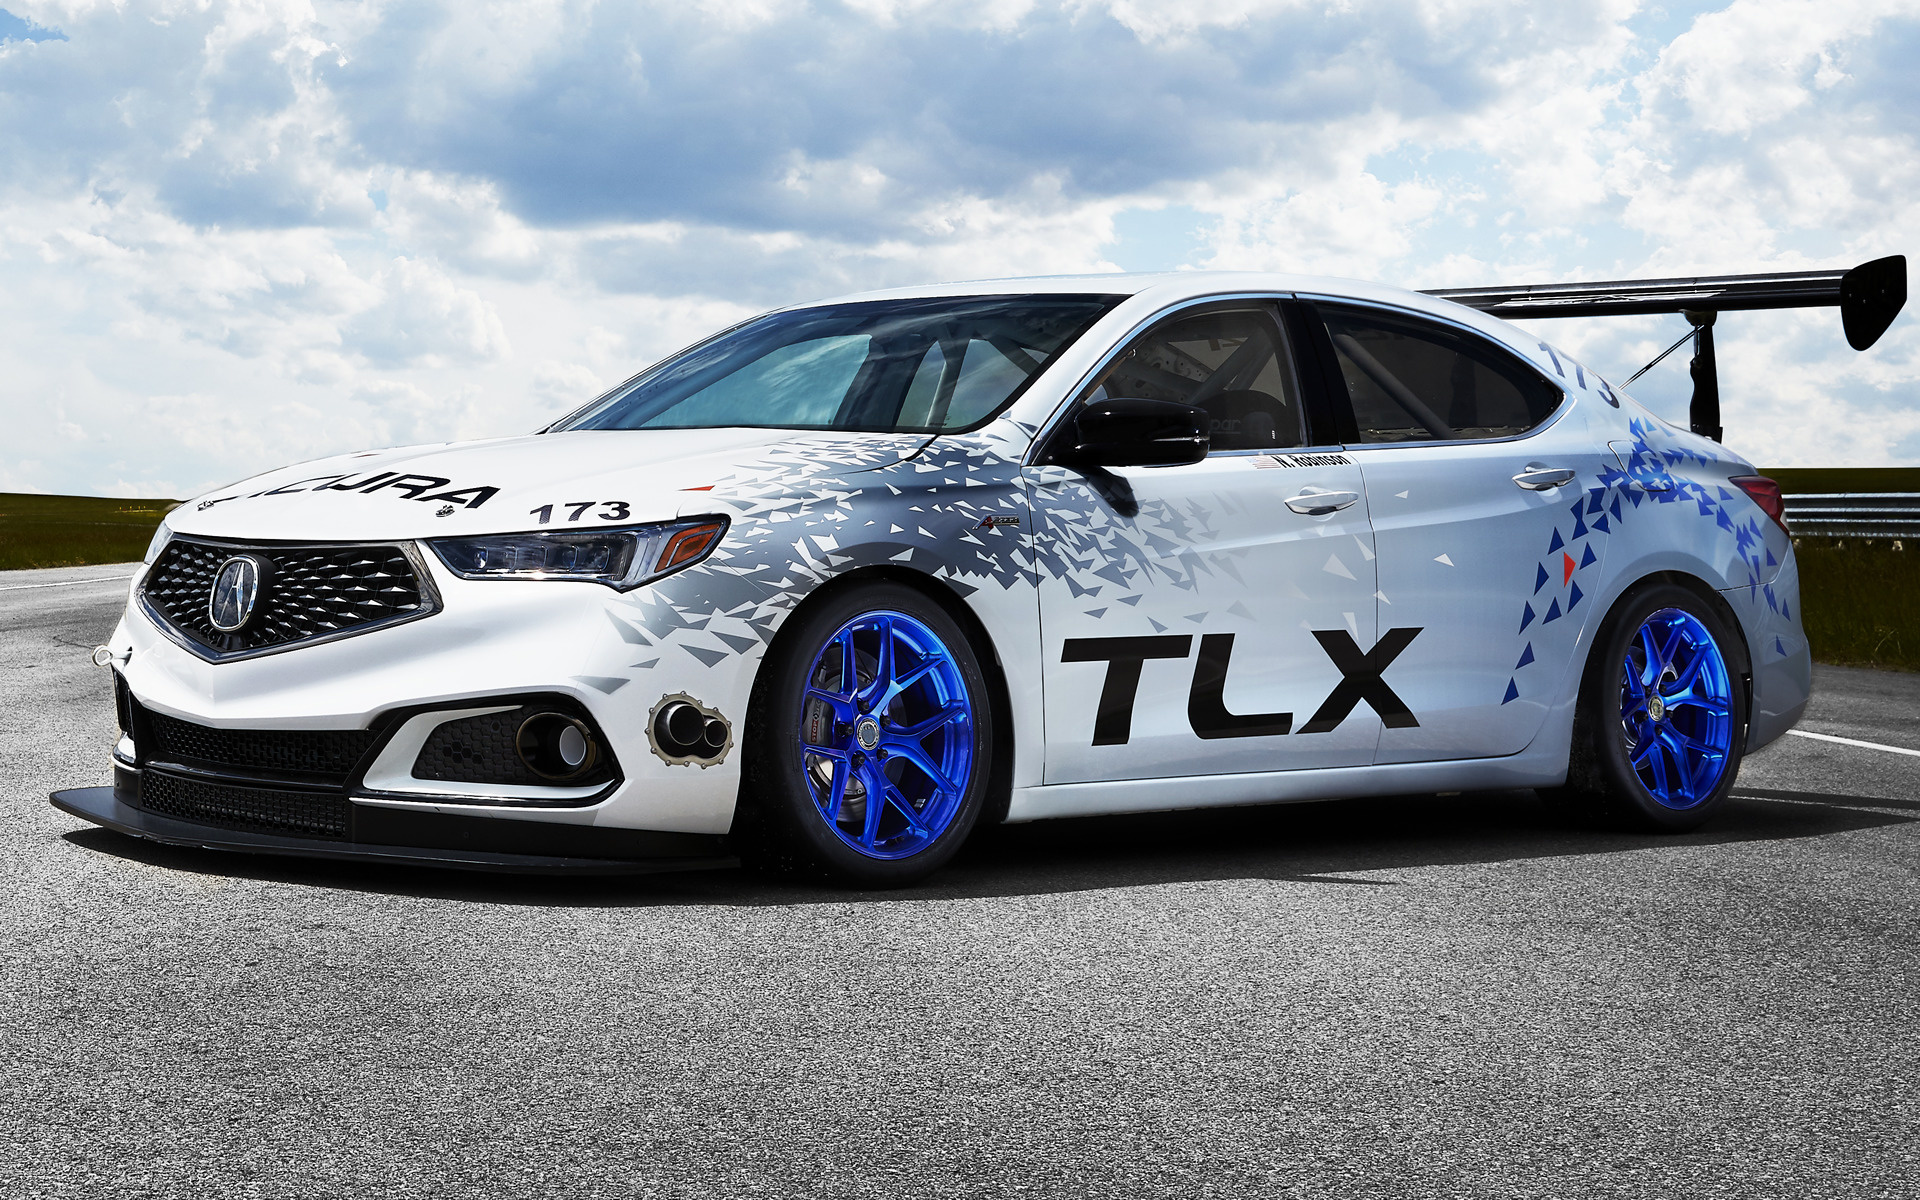 Dodge Ram 2017 >> 2017 Acura TLX A-Spec Race Car - Wallpapers and HD Images ...